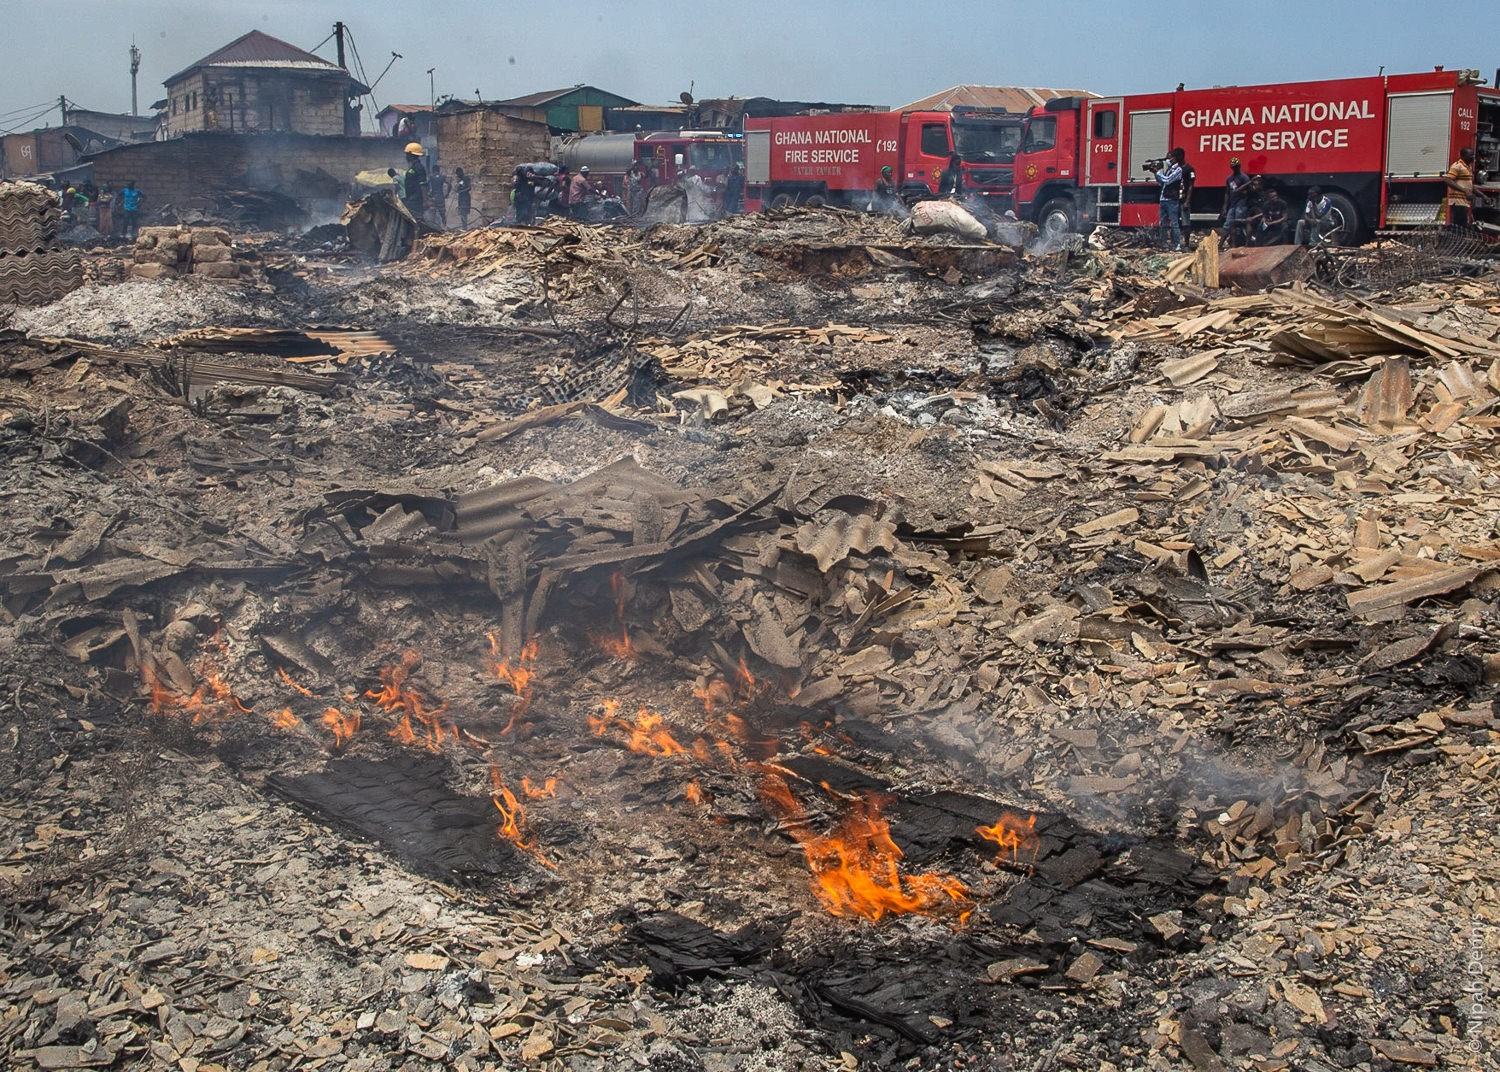 Homes burned to the ground in Agbogbloshie, Accra, Ghana. April 7, 2020. Photo by Nipah Dennis